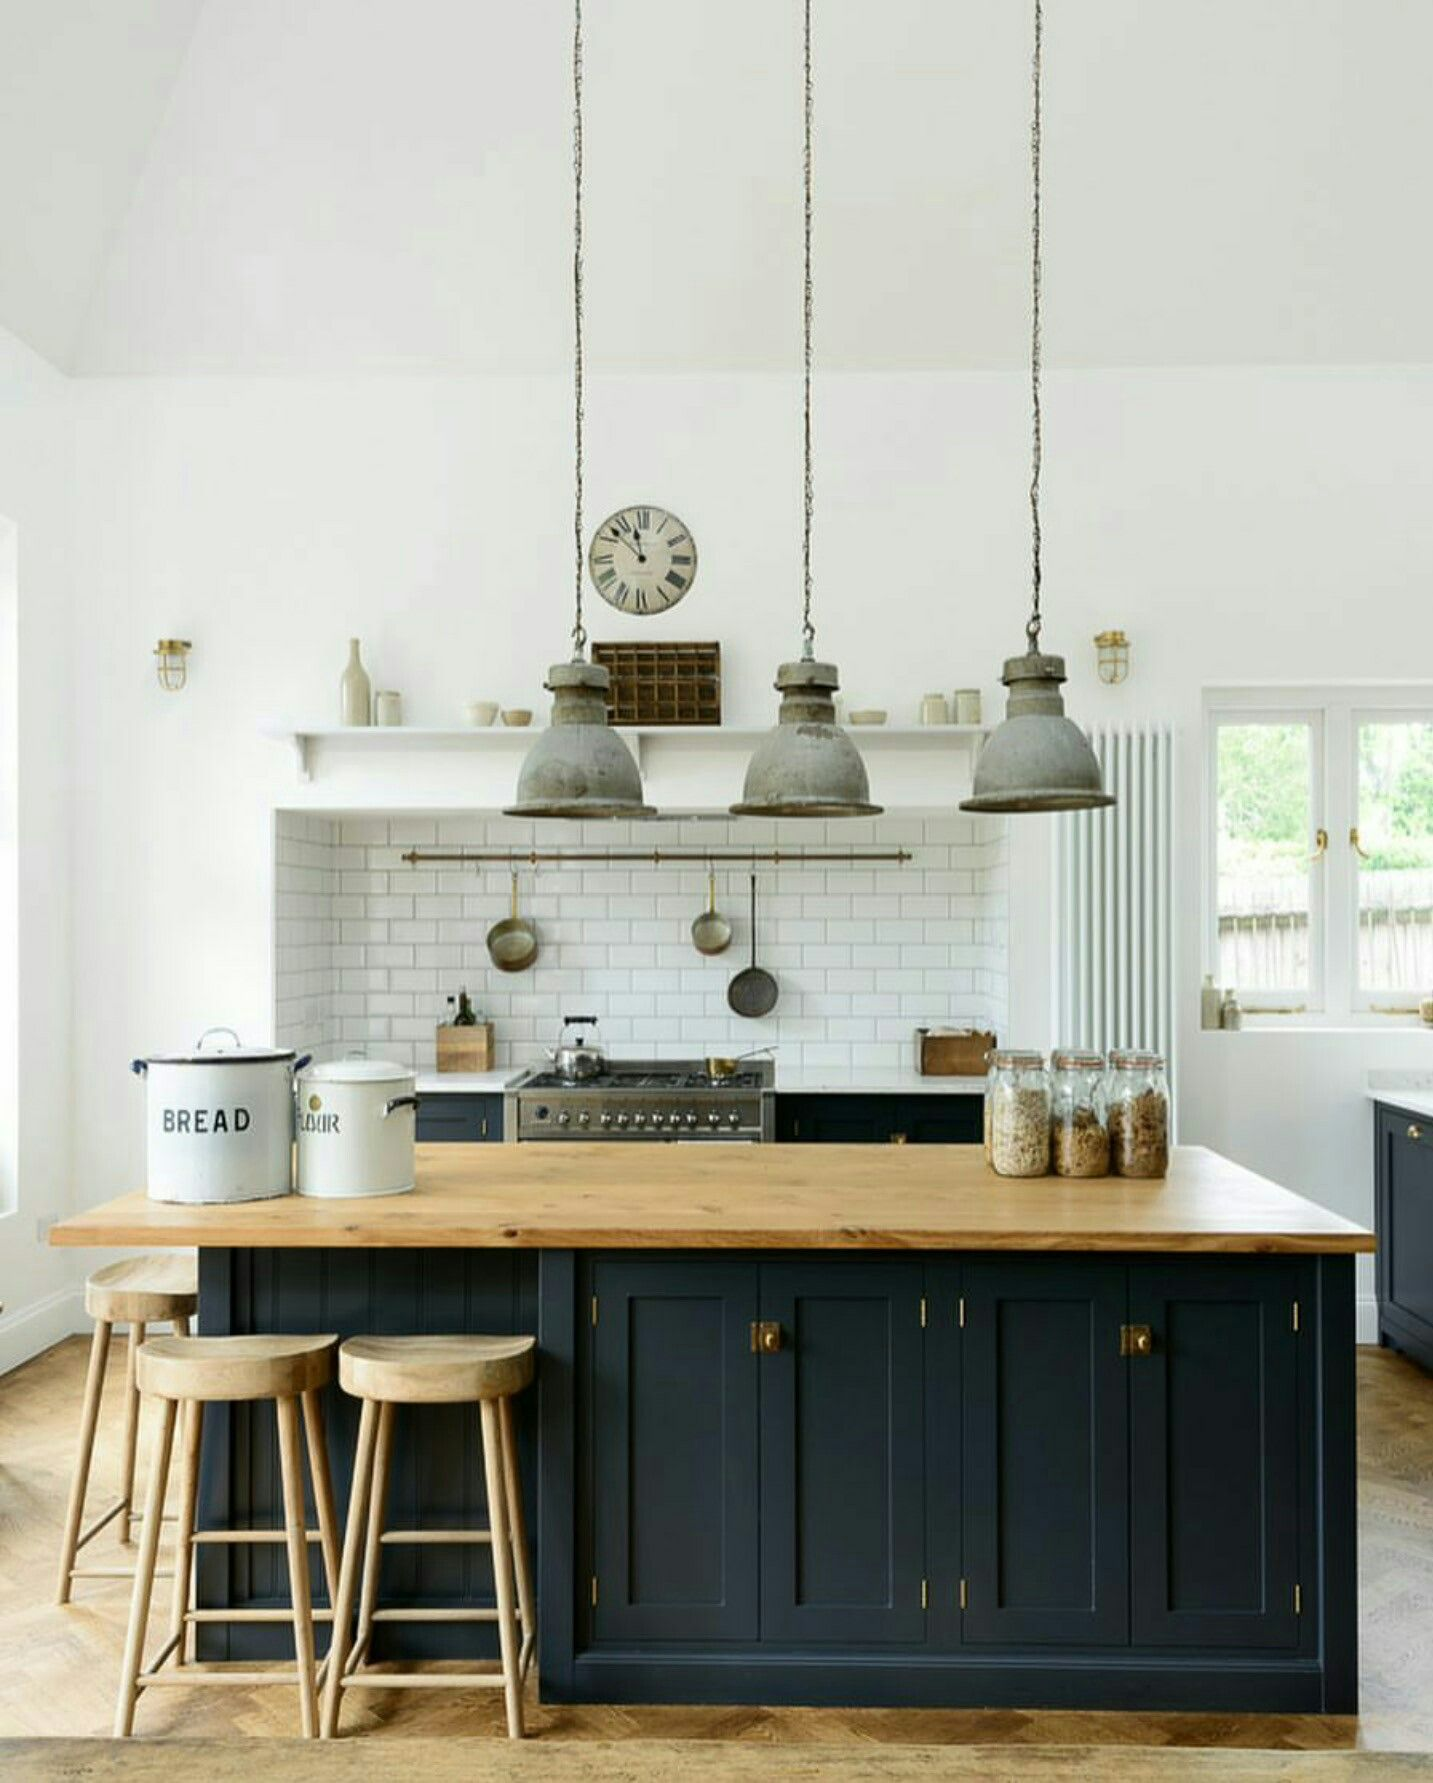 Like style not the bench top | Kitchen | Pinterest | Bench, Kitchens ...